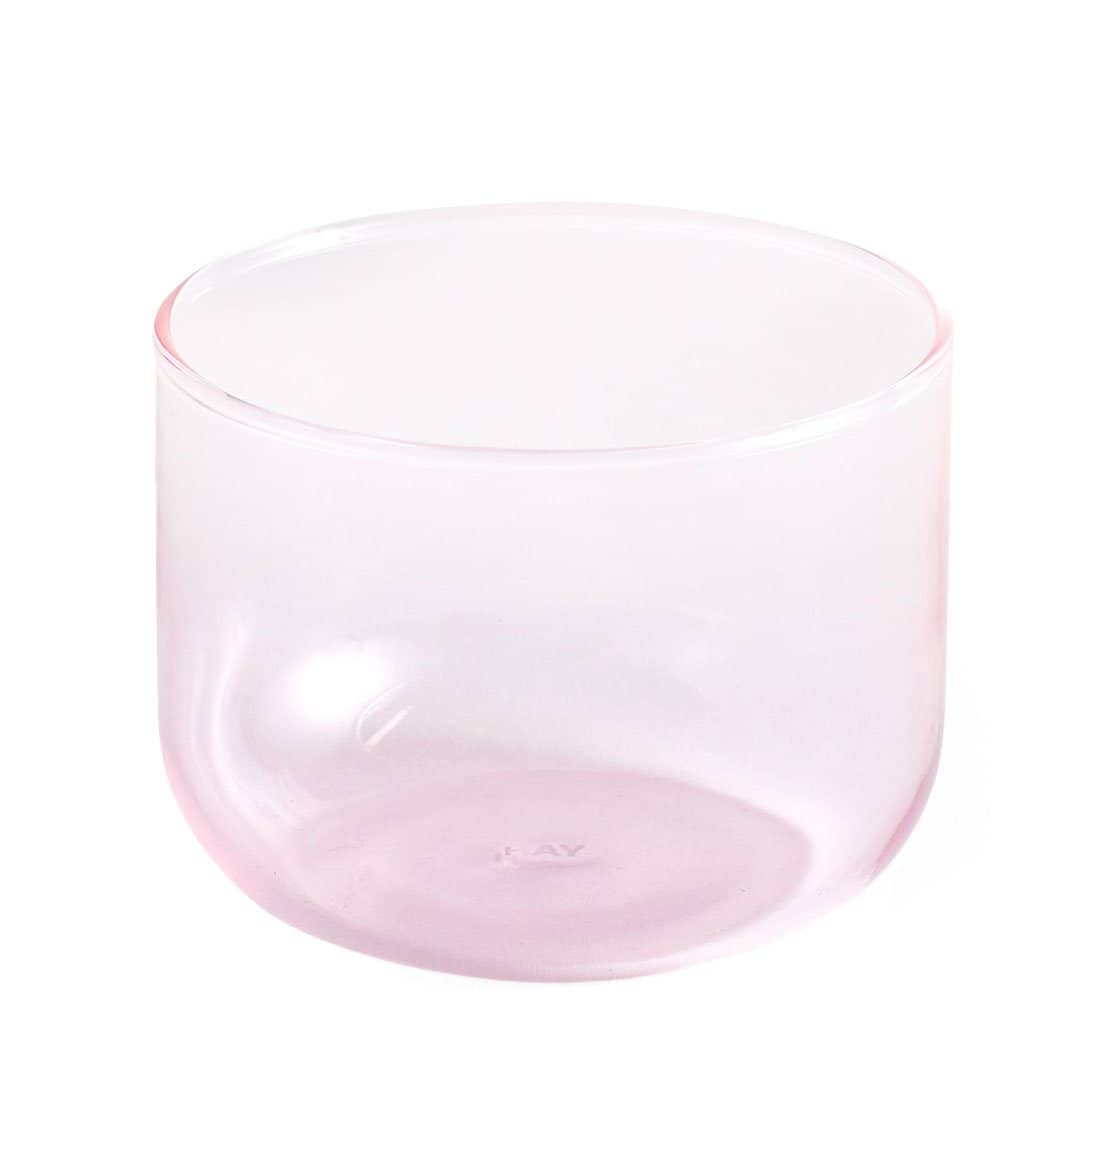 HAY Tint Glass – Pink – 200ml – Set of 2